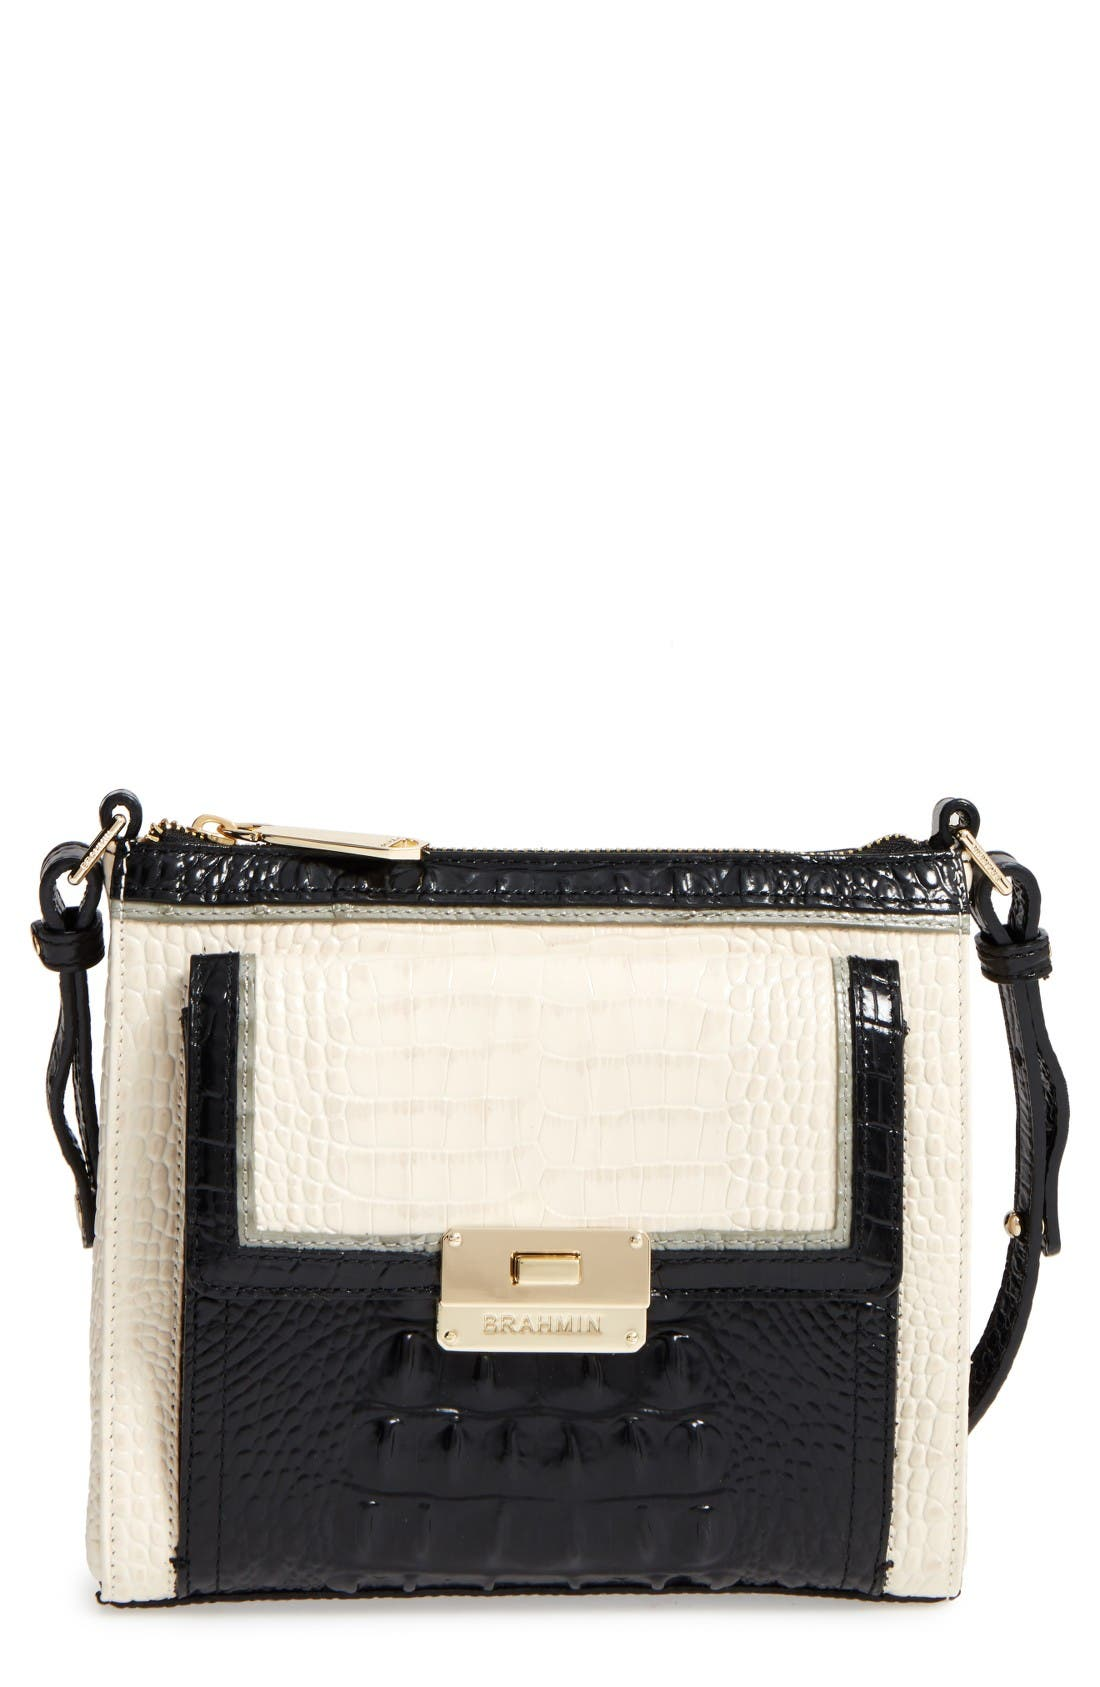 Main Image - Brahmin 'Mimosa' Crossbody Bag